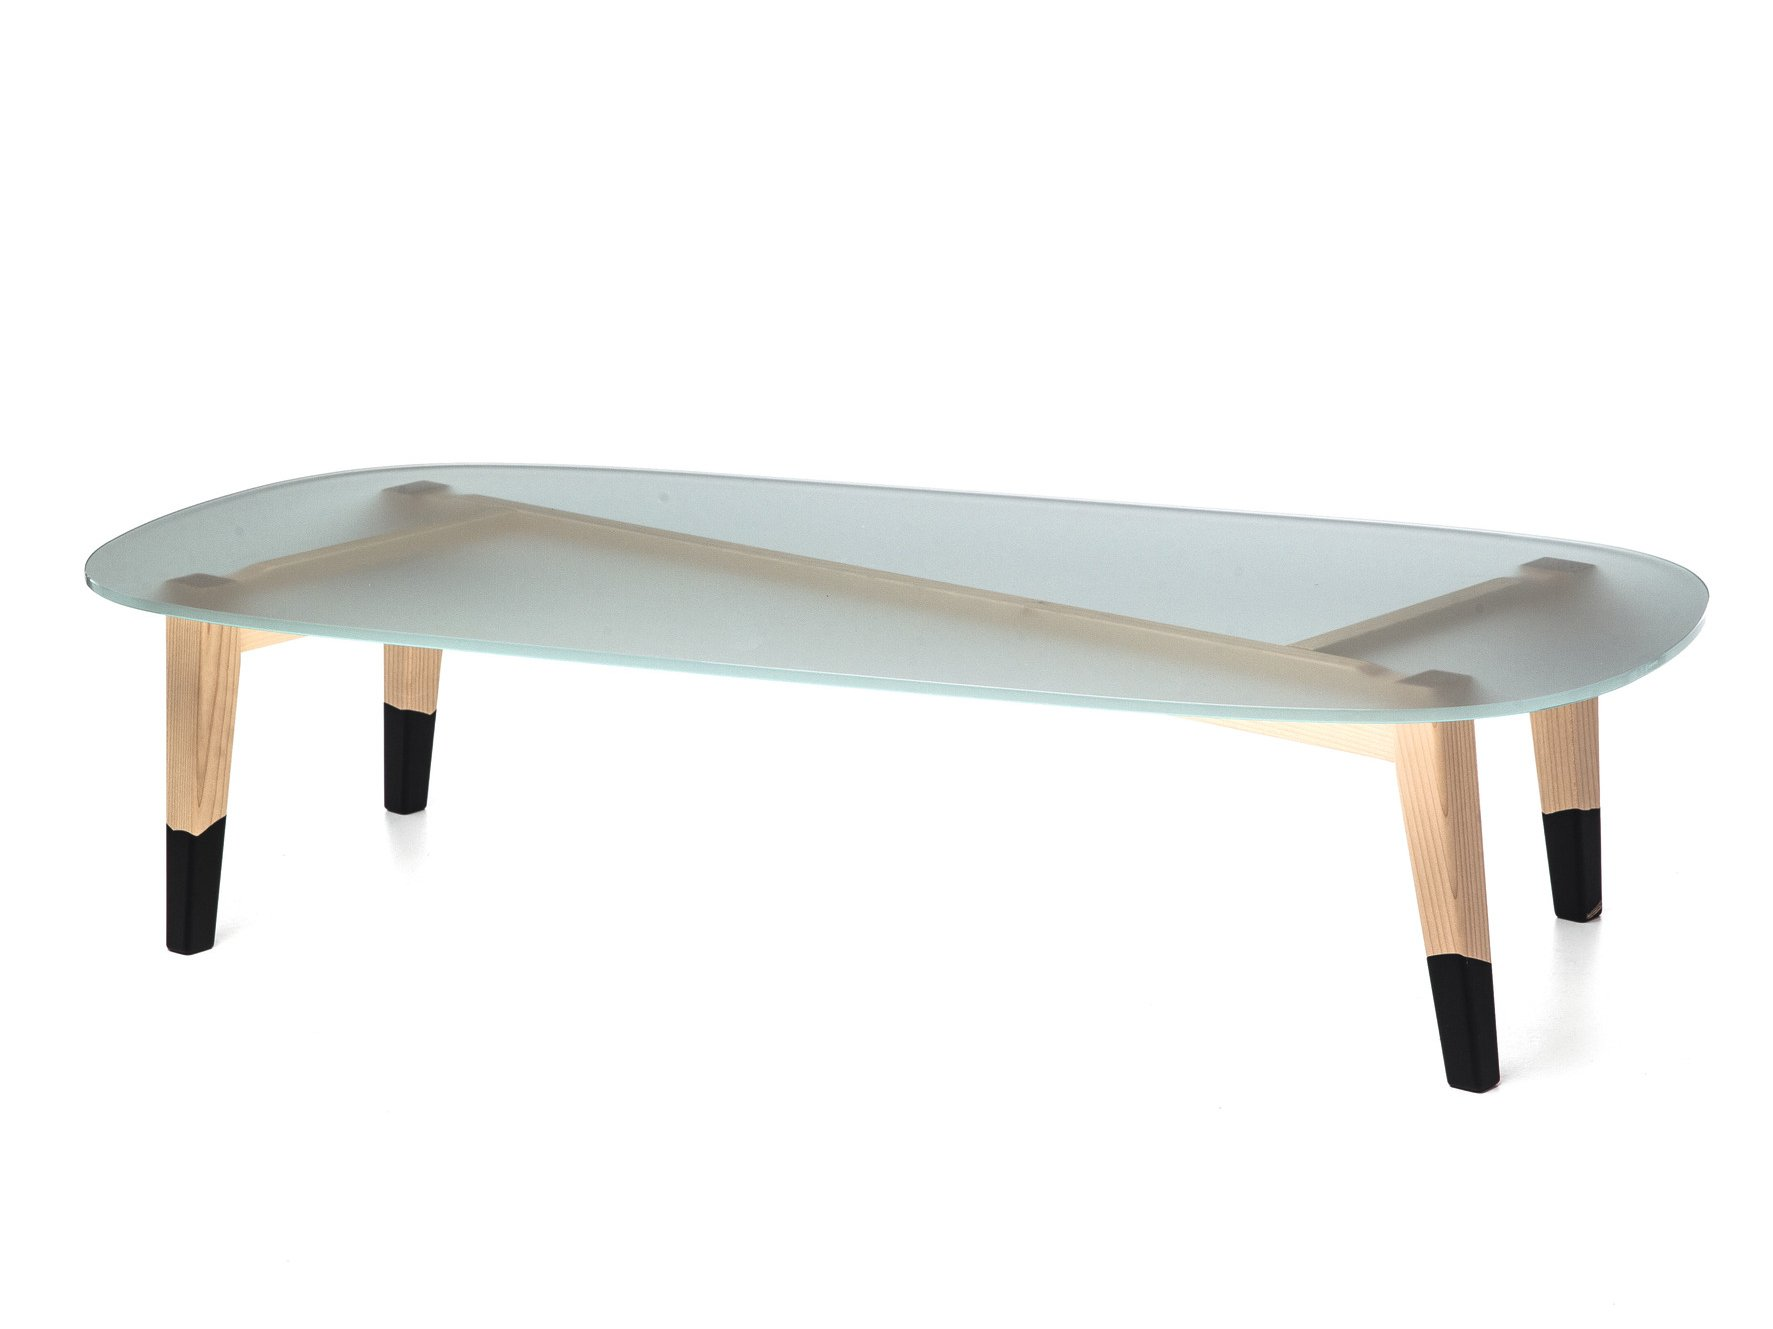 Low Rectangular Tempered Glass Coffee Table Next 47 Next Collection By Gervasoni Design Paola Navone